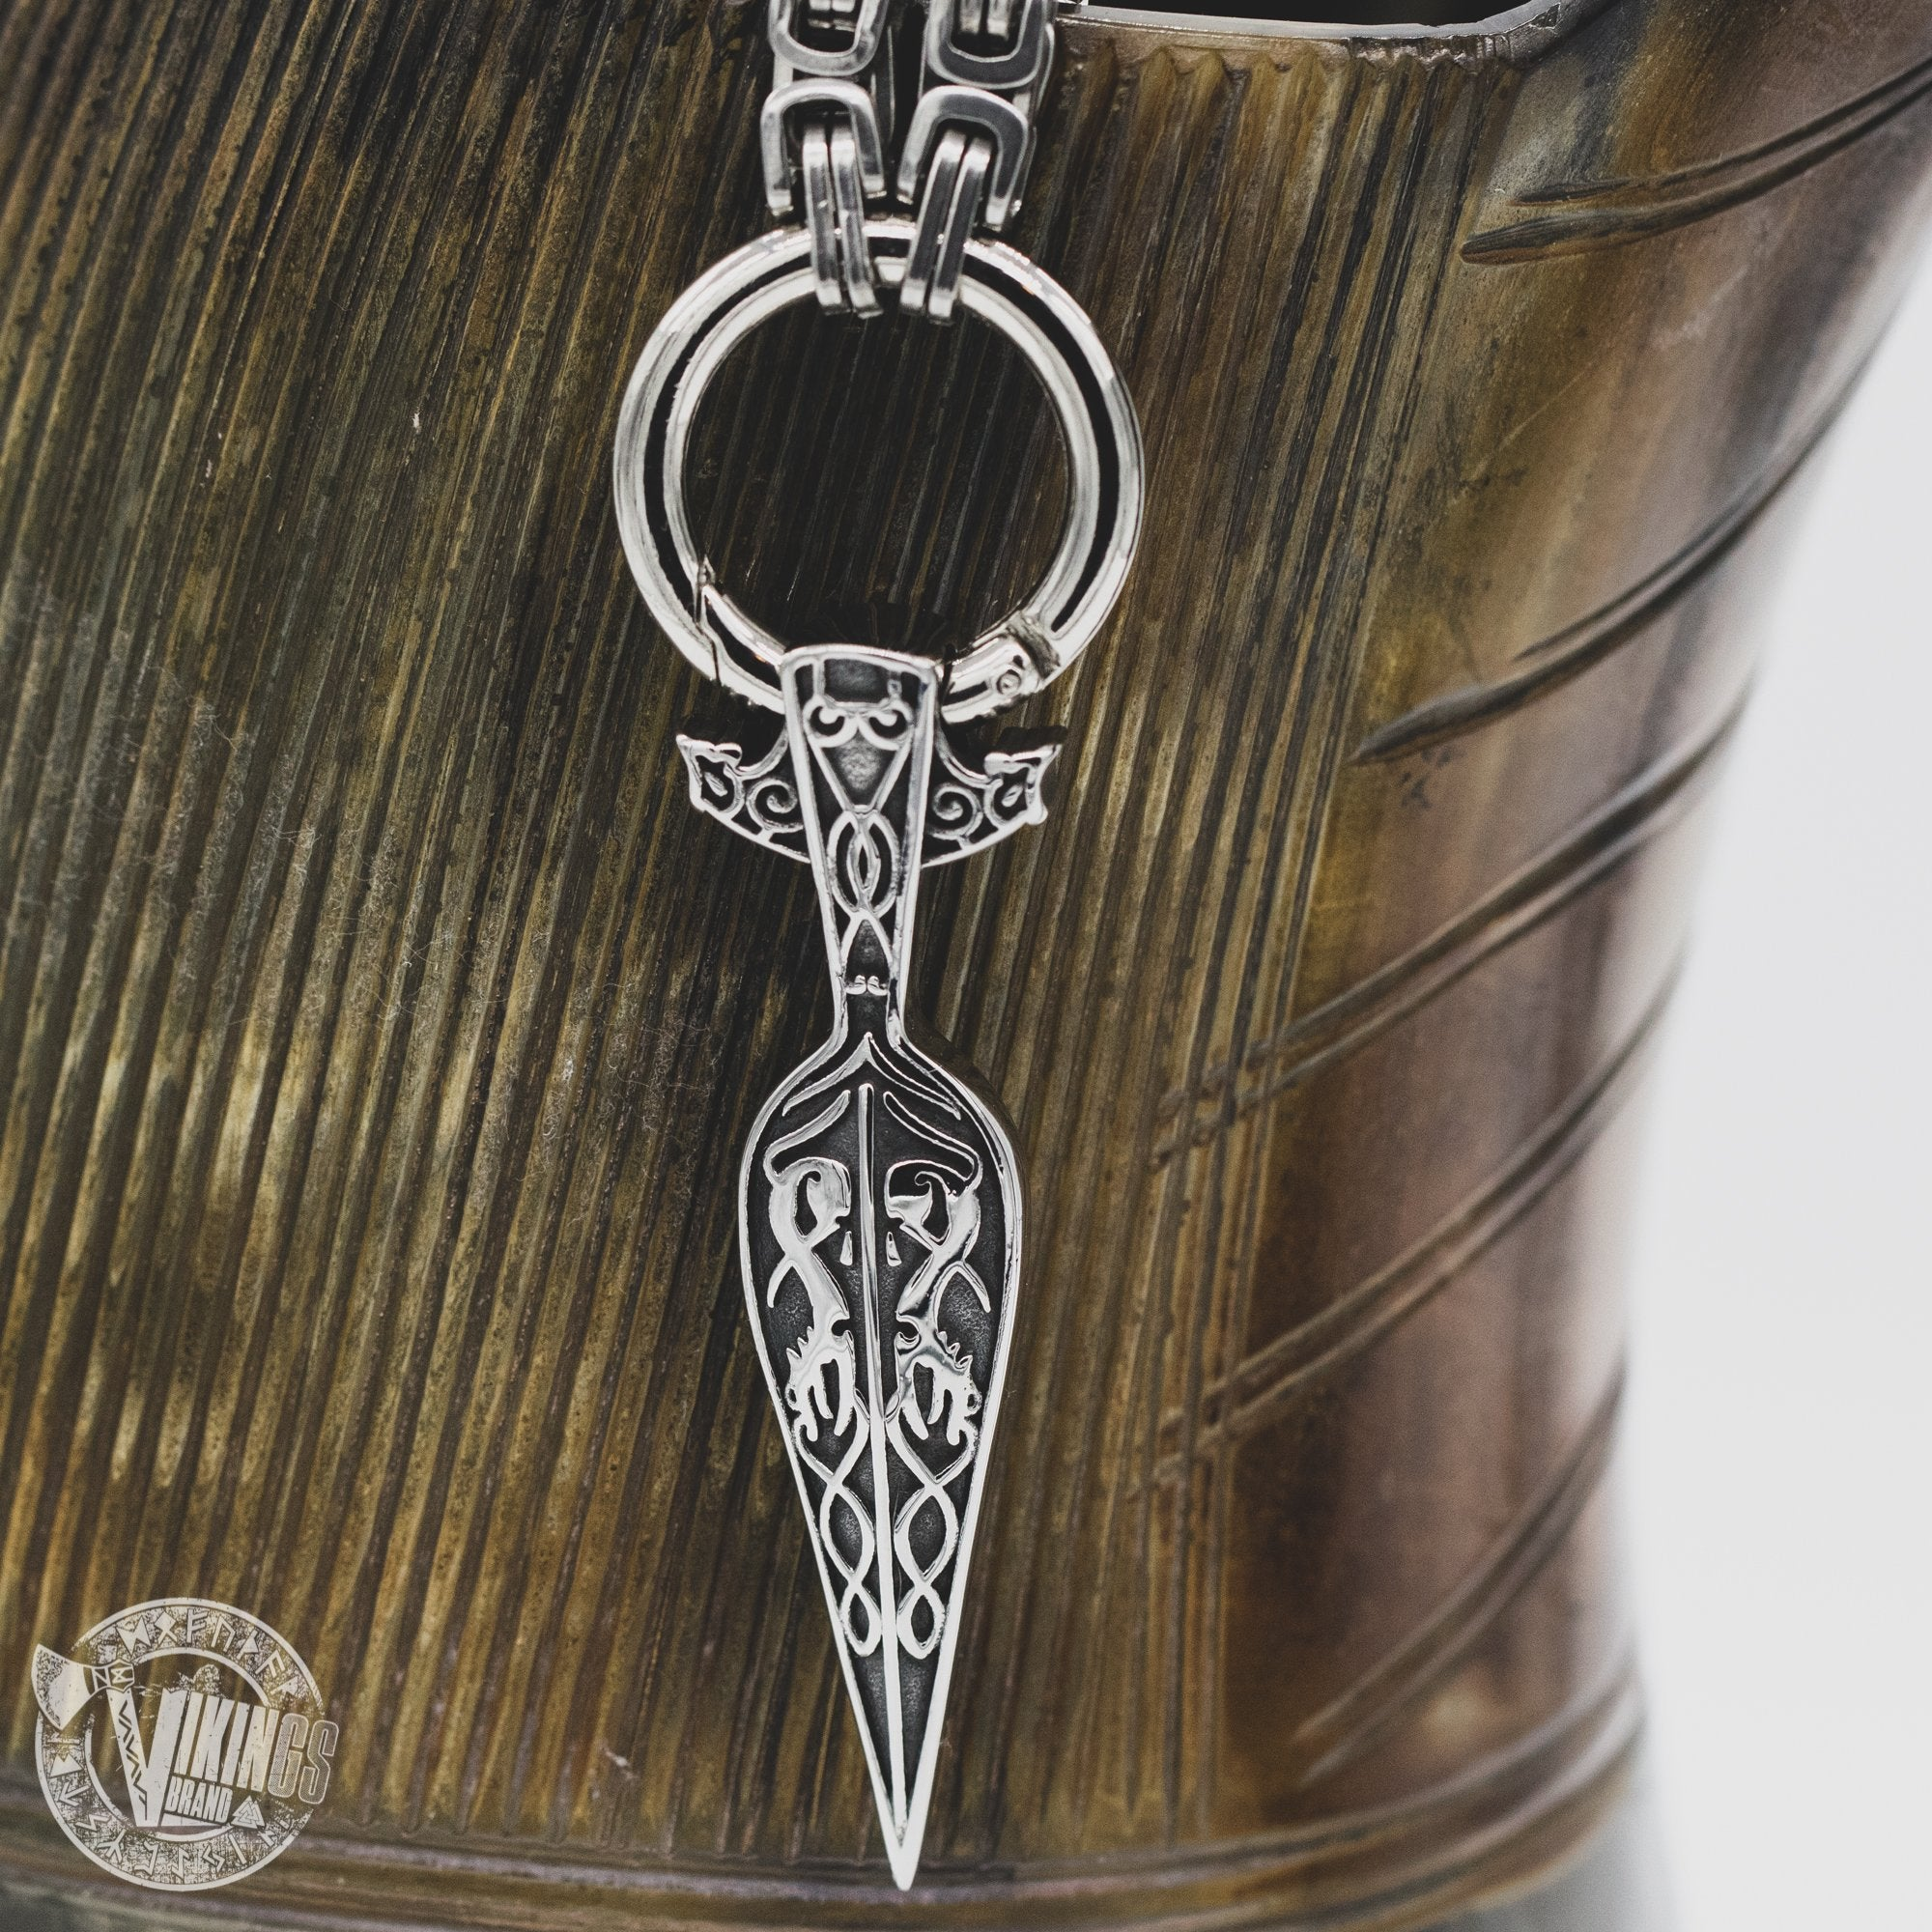 HANDMADE King Chain Stainless Steel Necklace with Gungnir (Odin Spear) Pendant - VikingsBrand